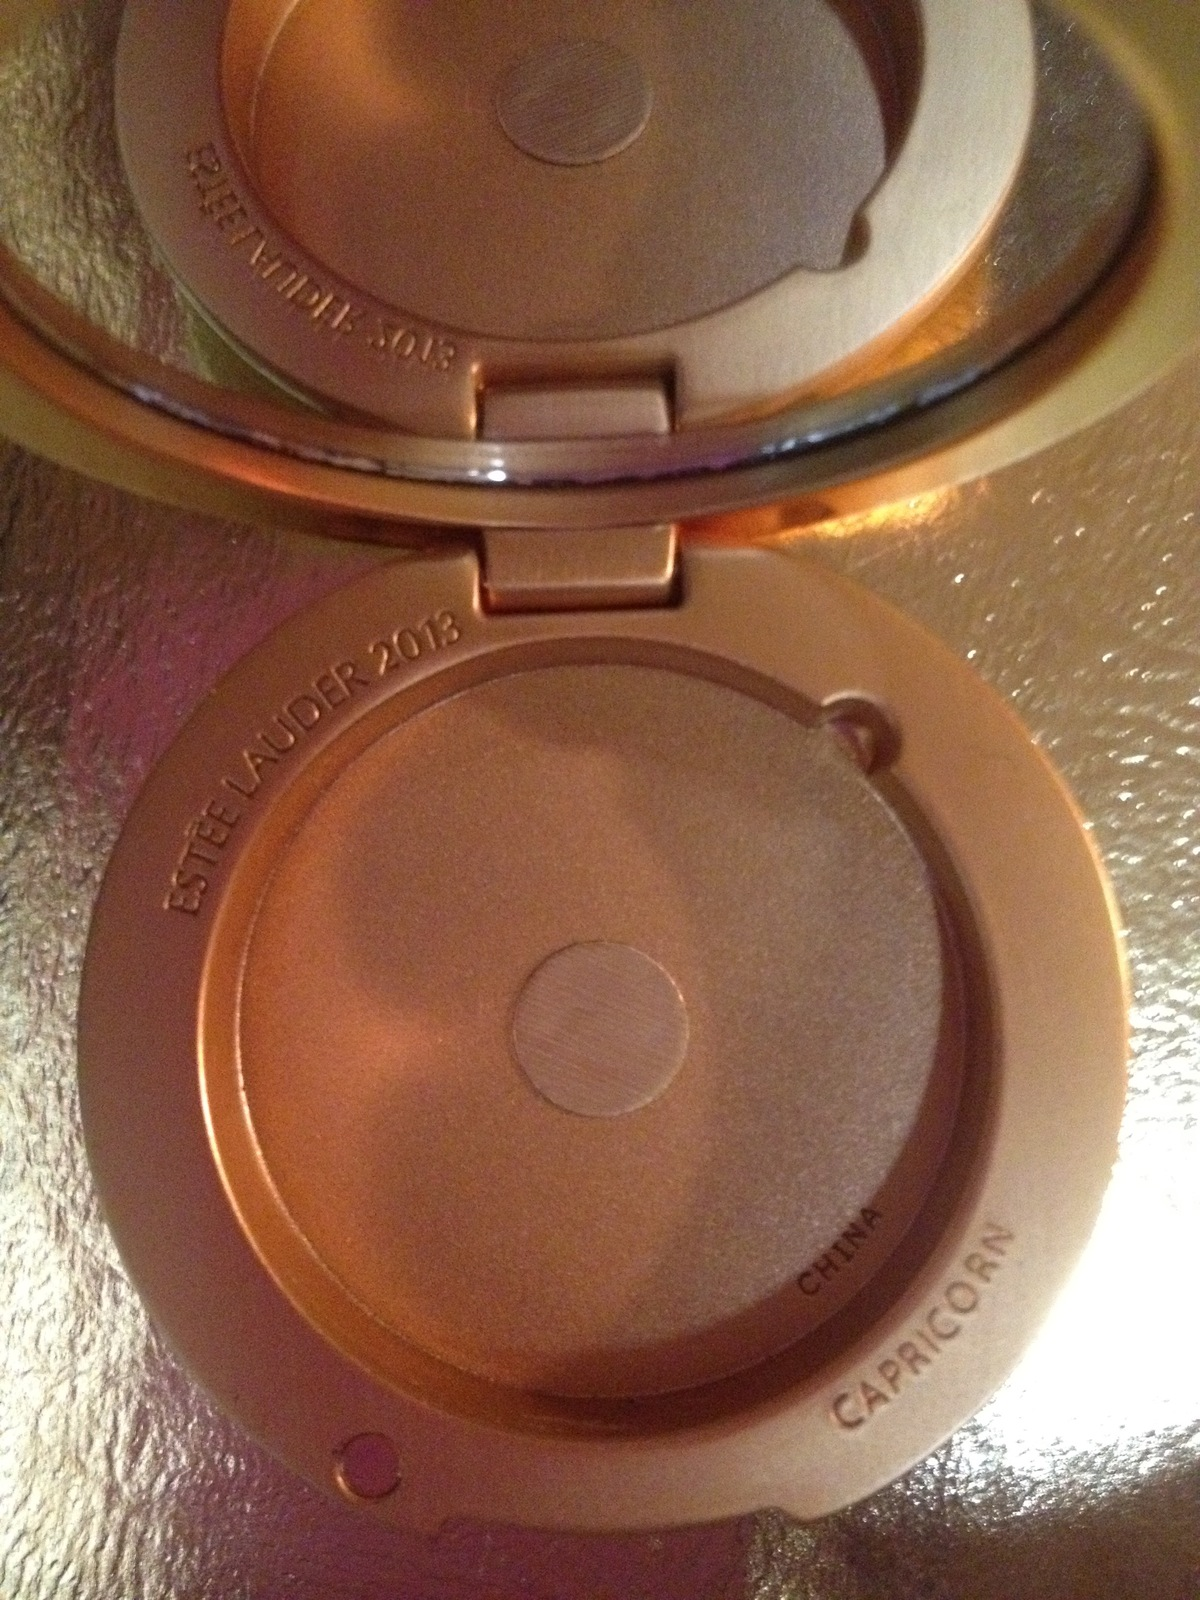 Estee Lauder GOLDEN CAPRICORN Lucidity Powder Compact 2013 - Crystal accented